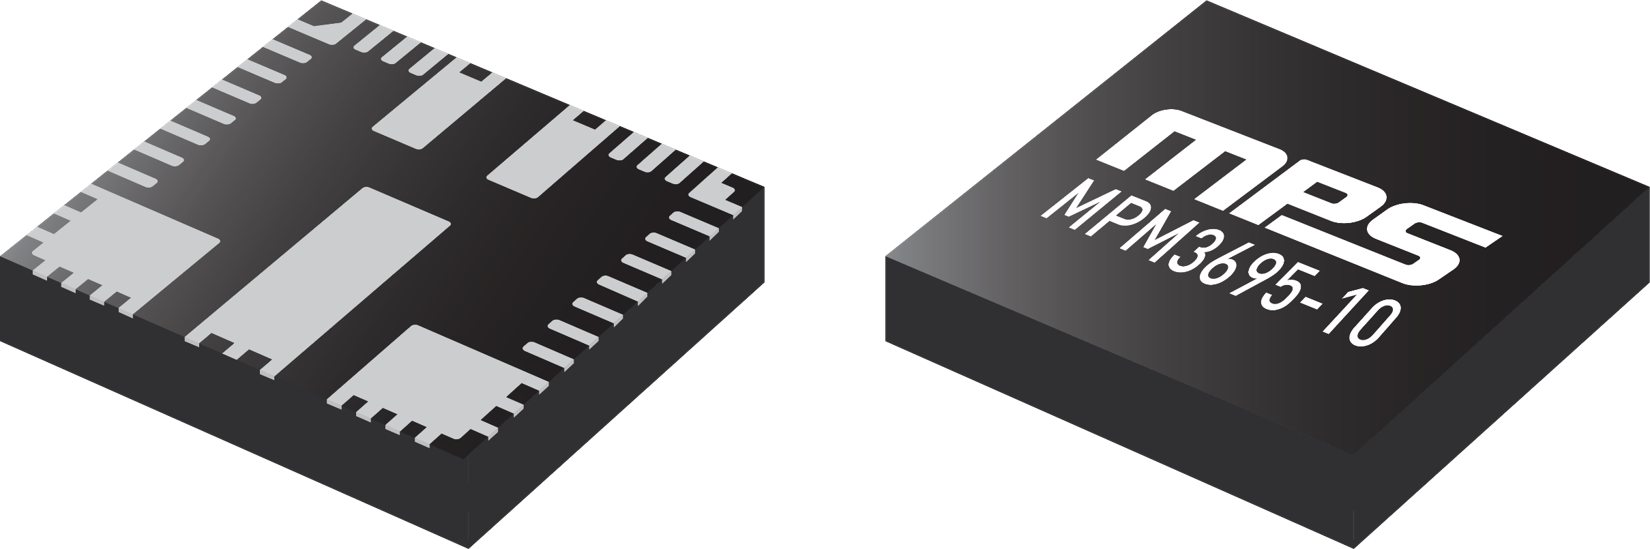 Figure 3: MPM3695-10, Ultra-Thin 10A Power Module